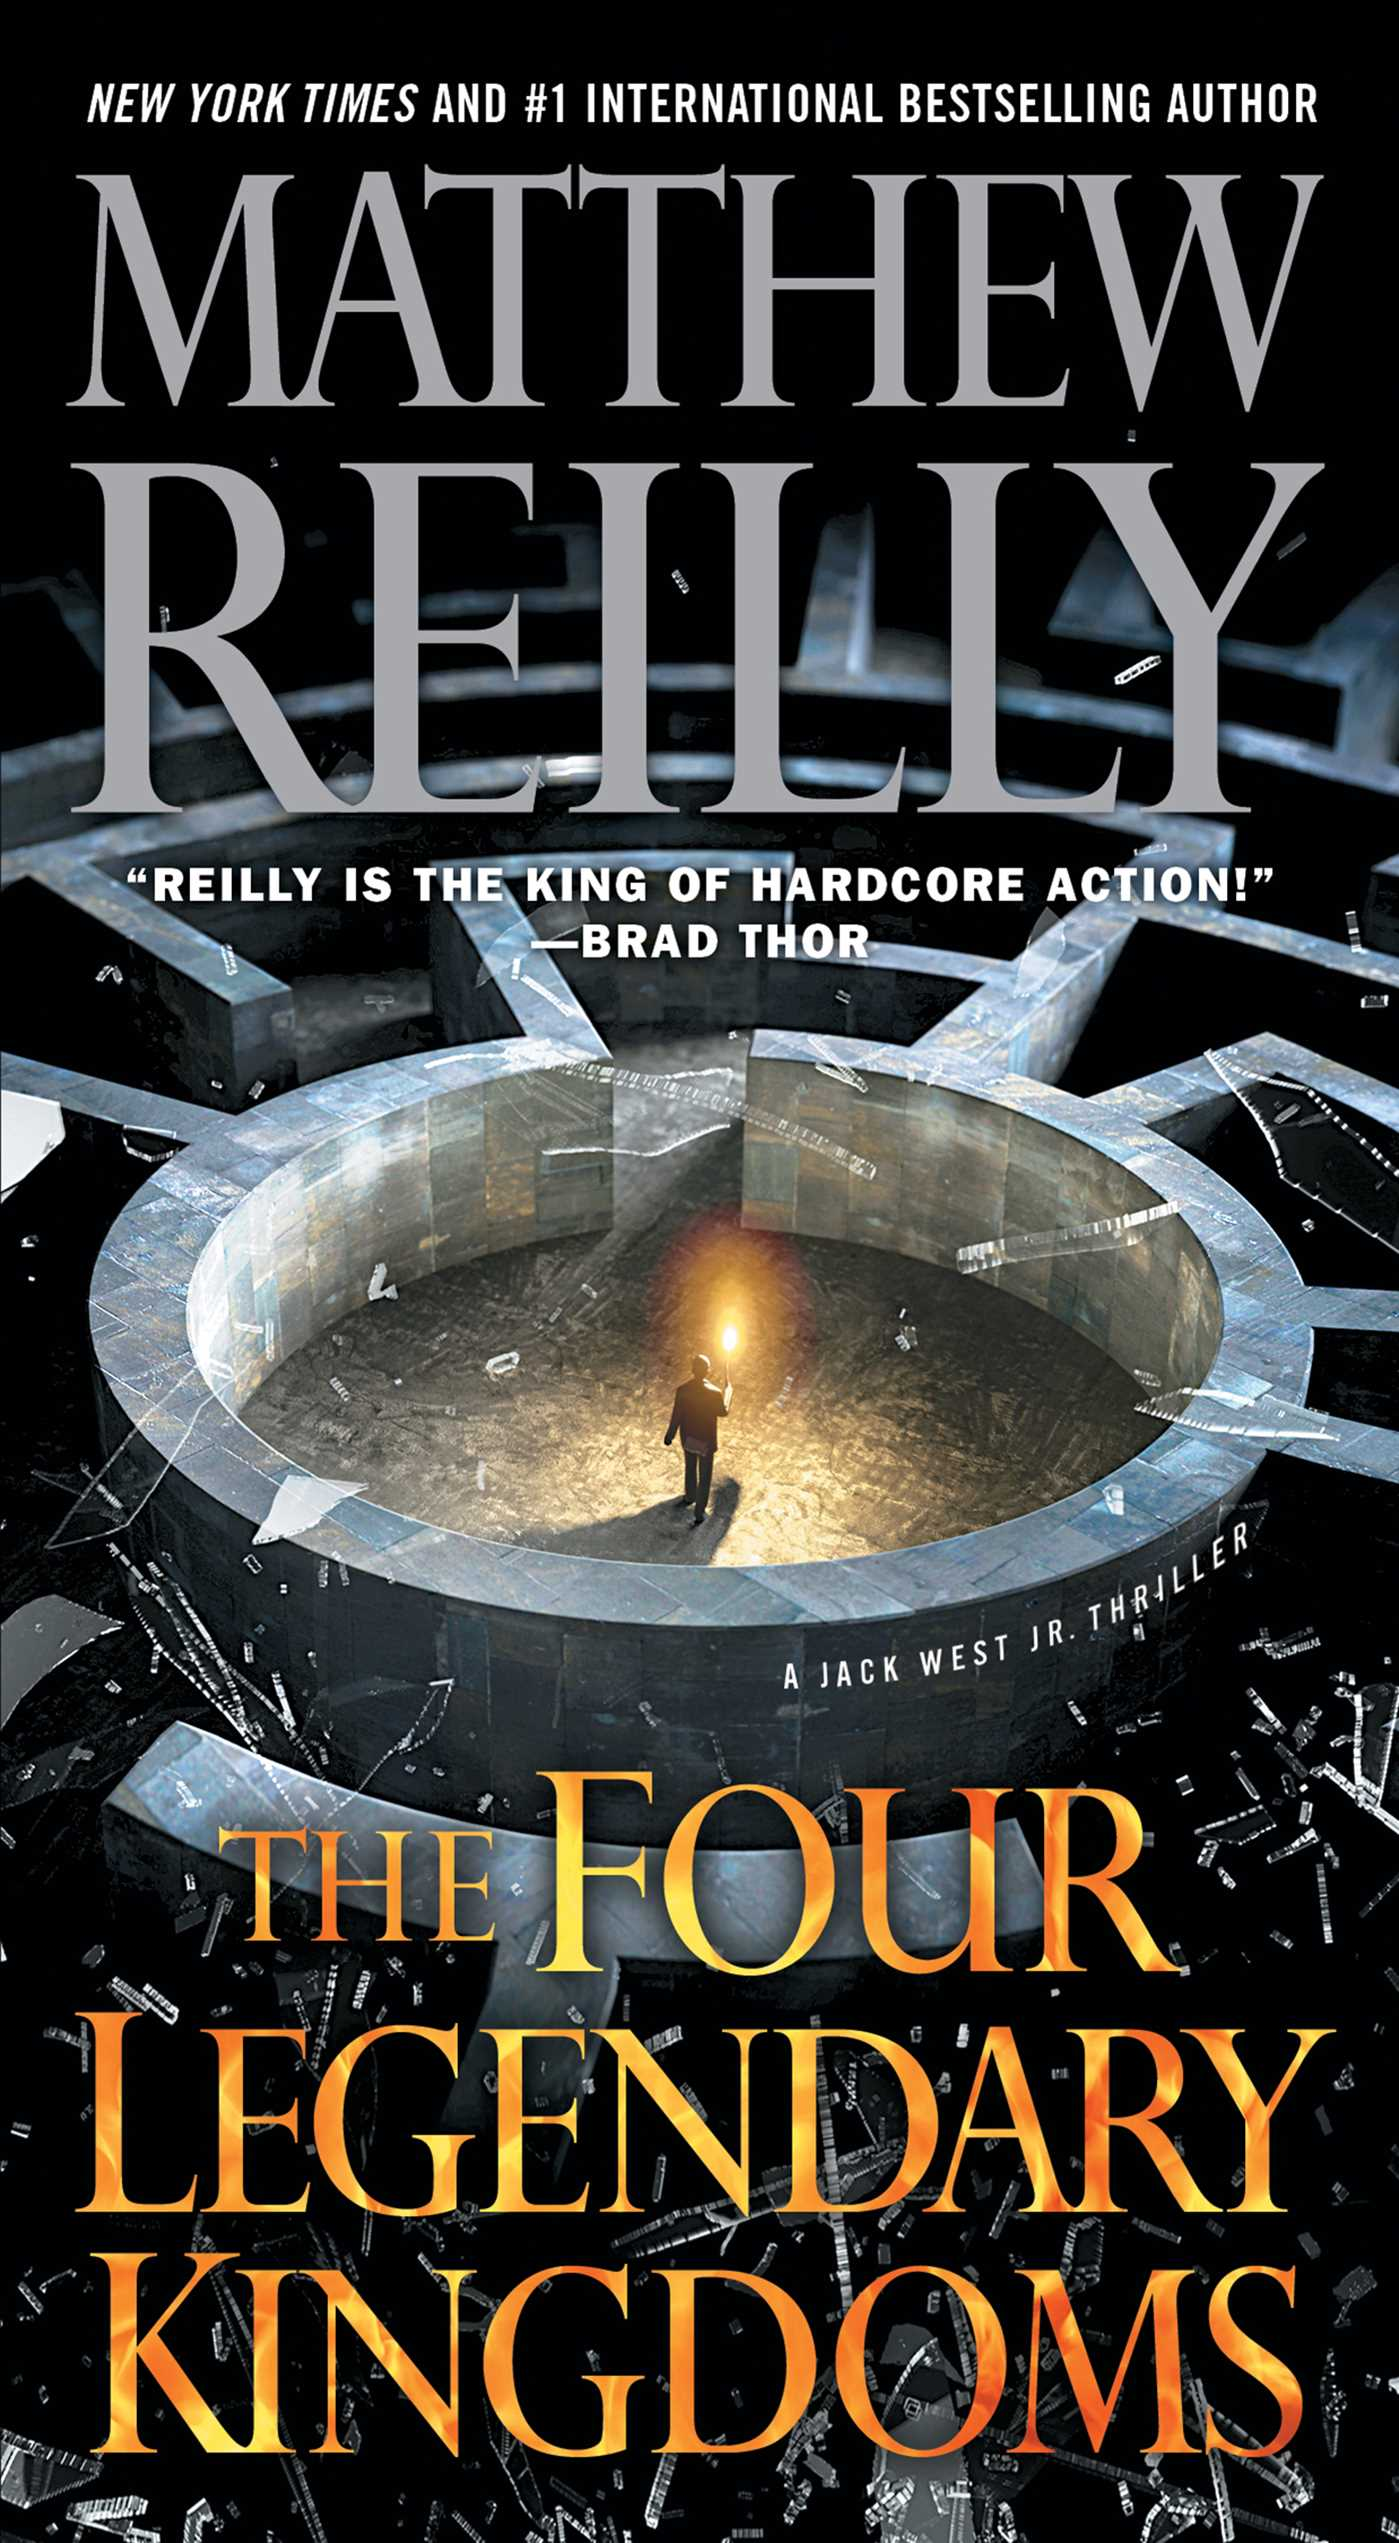 MATTHEW REILLY CONTEST EPUB MAZE EBOOK DOWNLOAD